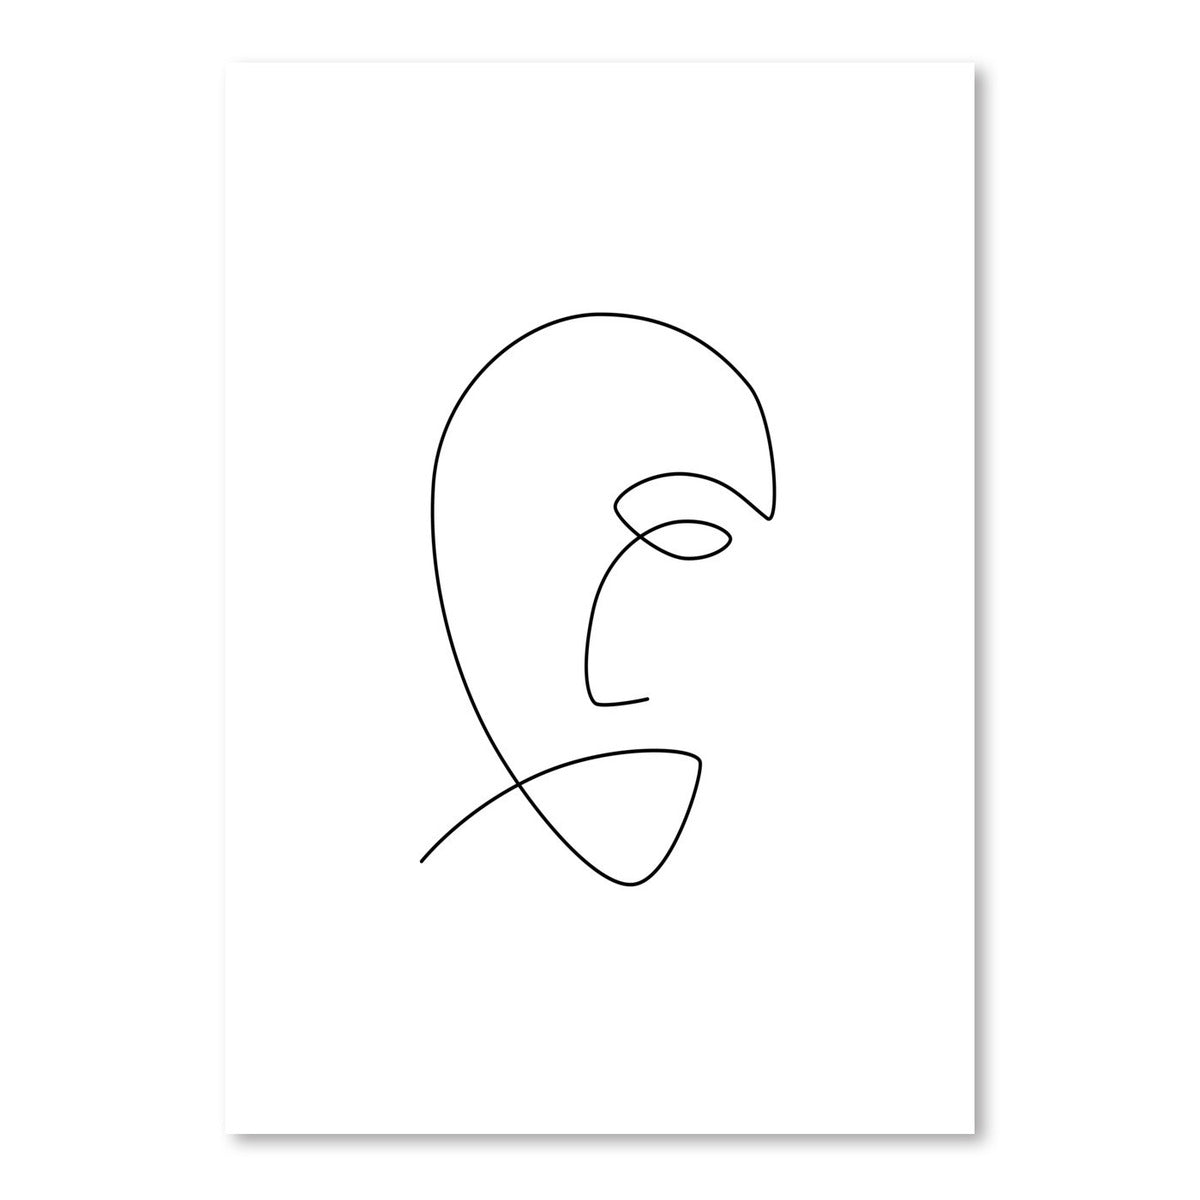 Sad Line by Explicit Design Art Print - Art Print - Americanflat